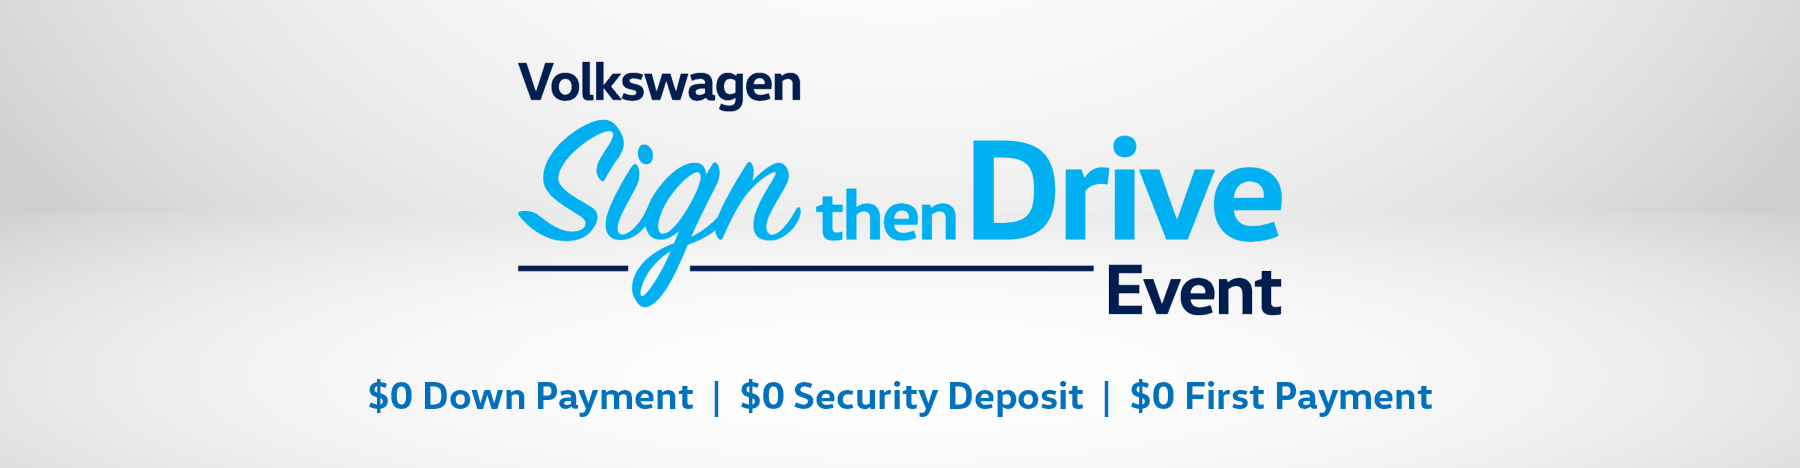 Volkswagen Sign then Drive Event. $0 Down Payment, $0 Security Deposit, $0 First Payment.